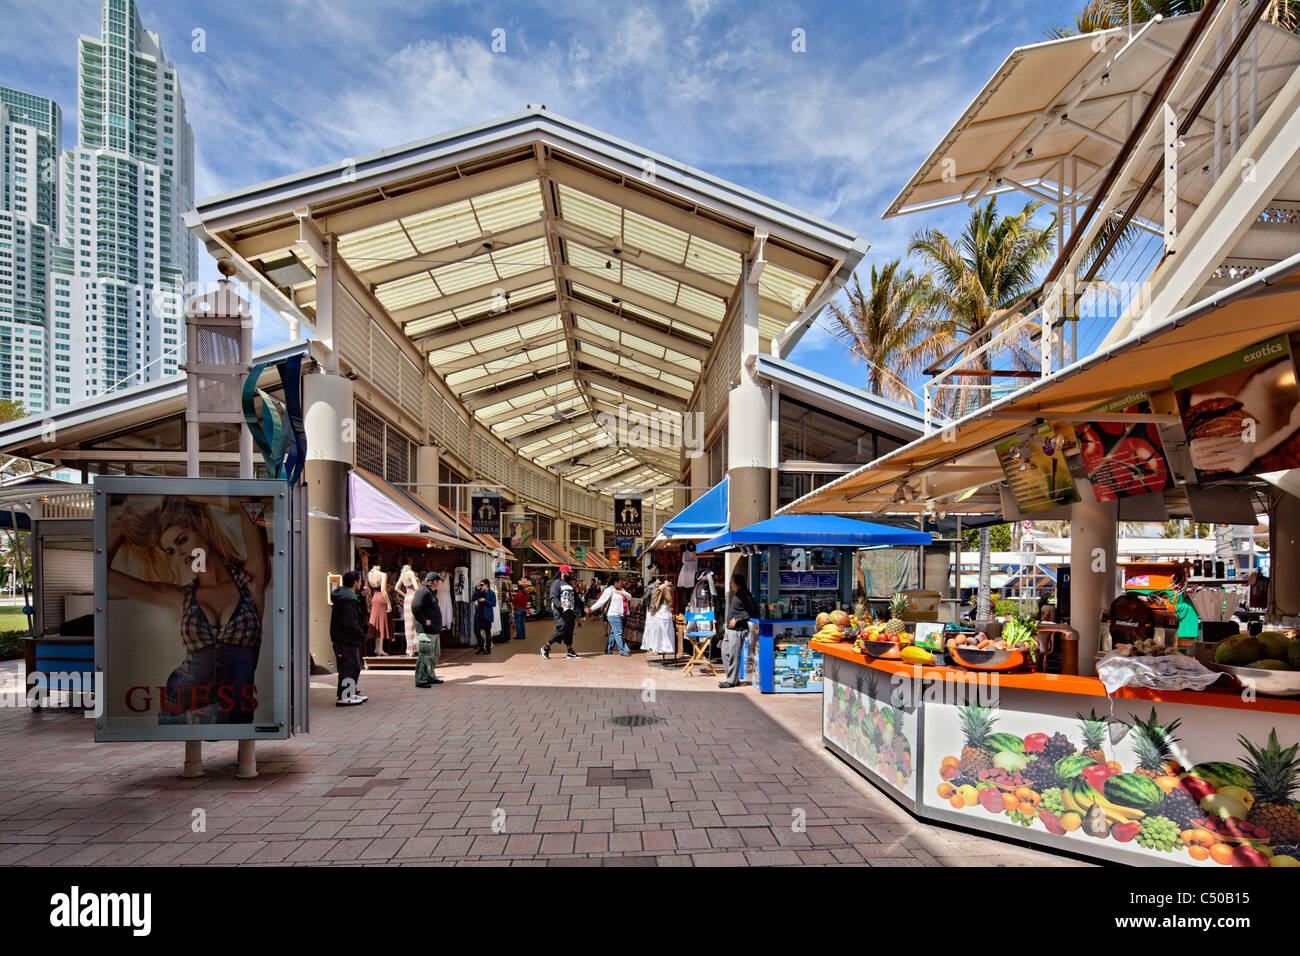 Bayside Marketplace Downtown Miami - Stock Image